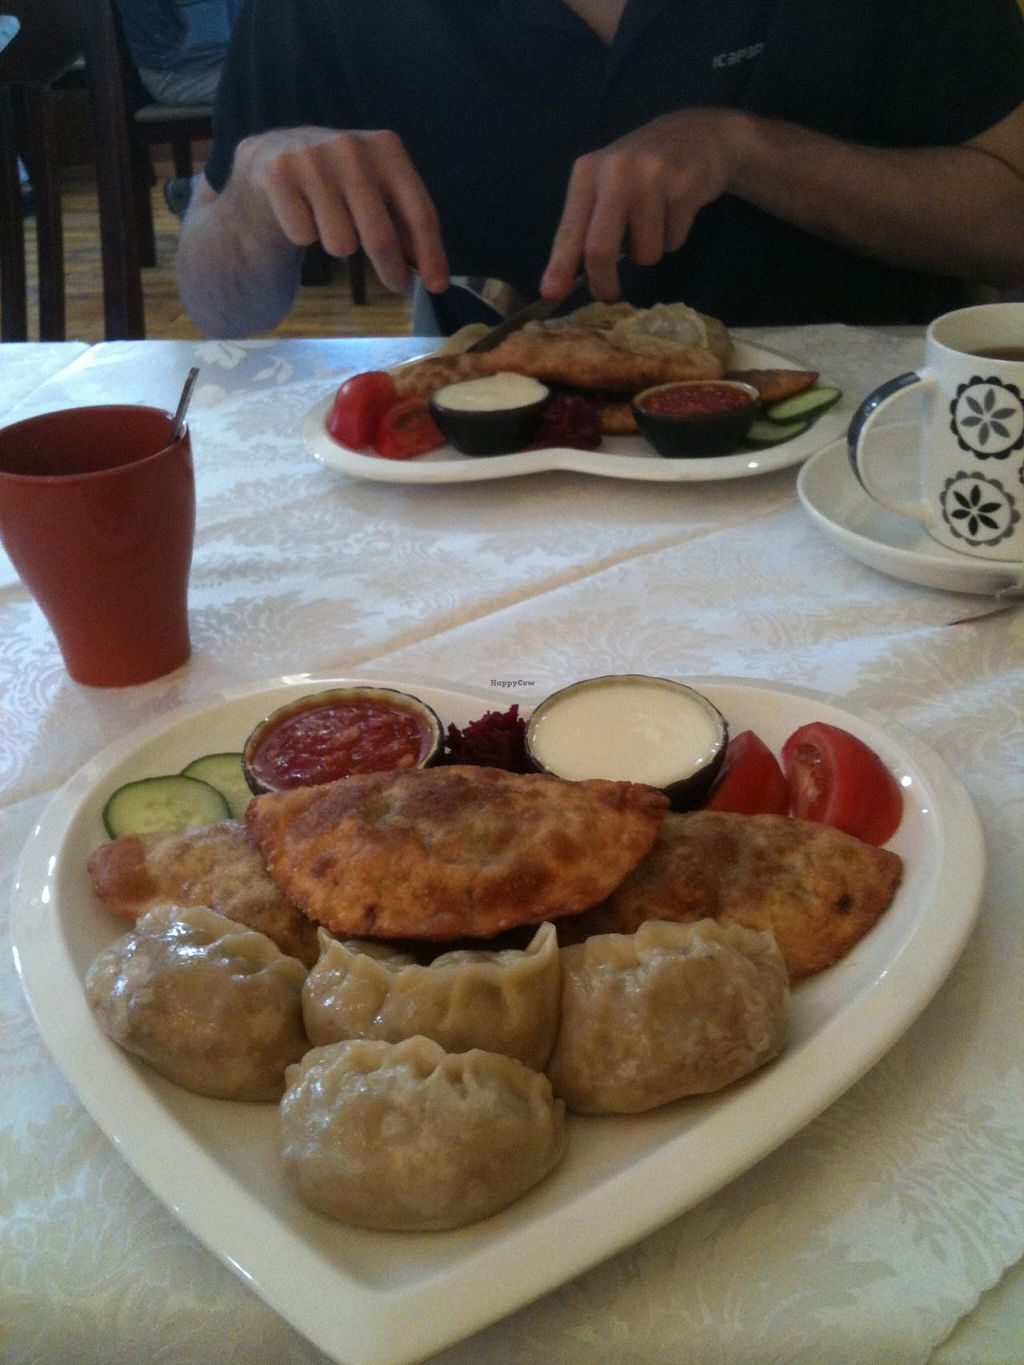 """Photo of Luna Blanca  by <a href=""""/members/profile/heloisepe"""">heloisepe</a> <br/>Delicious mongolian combo plate (10.400 T approx), with vegeterian version of the wide-spread mongolian fastfood, and dumplings <br/> June 22, 2015  - <a href='/contact/abuse/image/17018/106970'>Report</a>"""